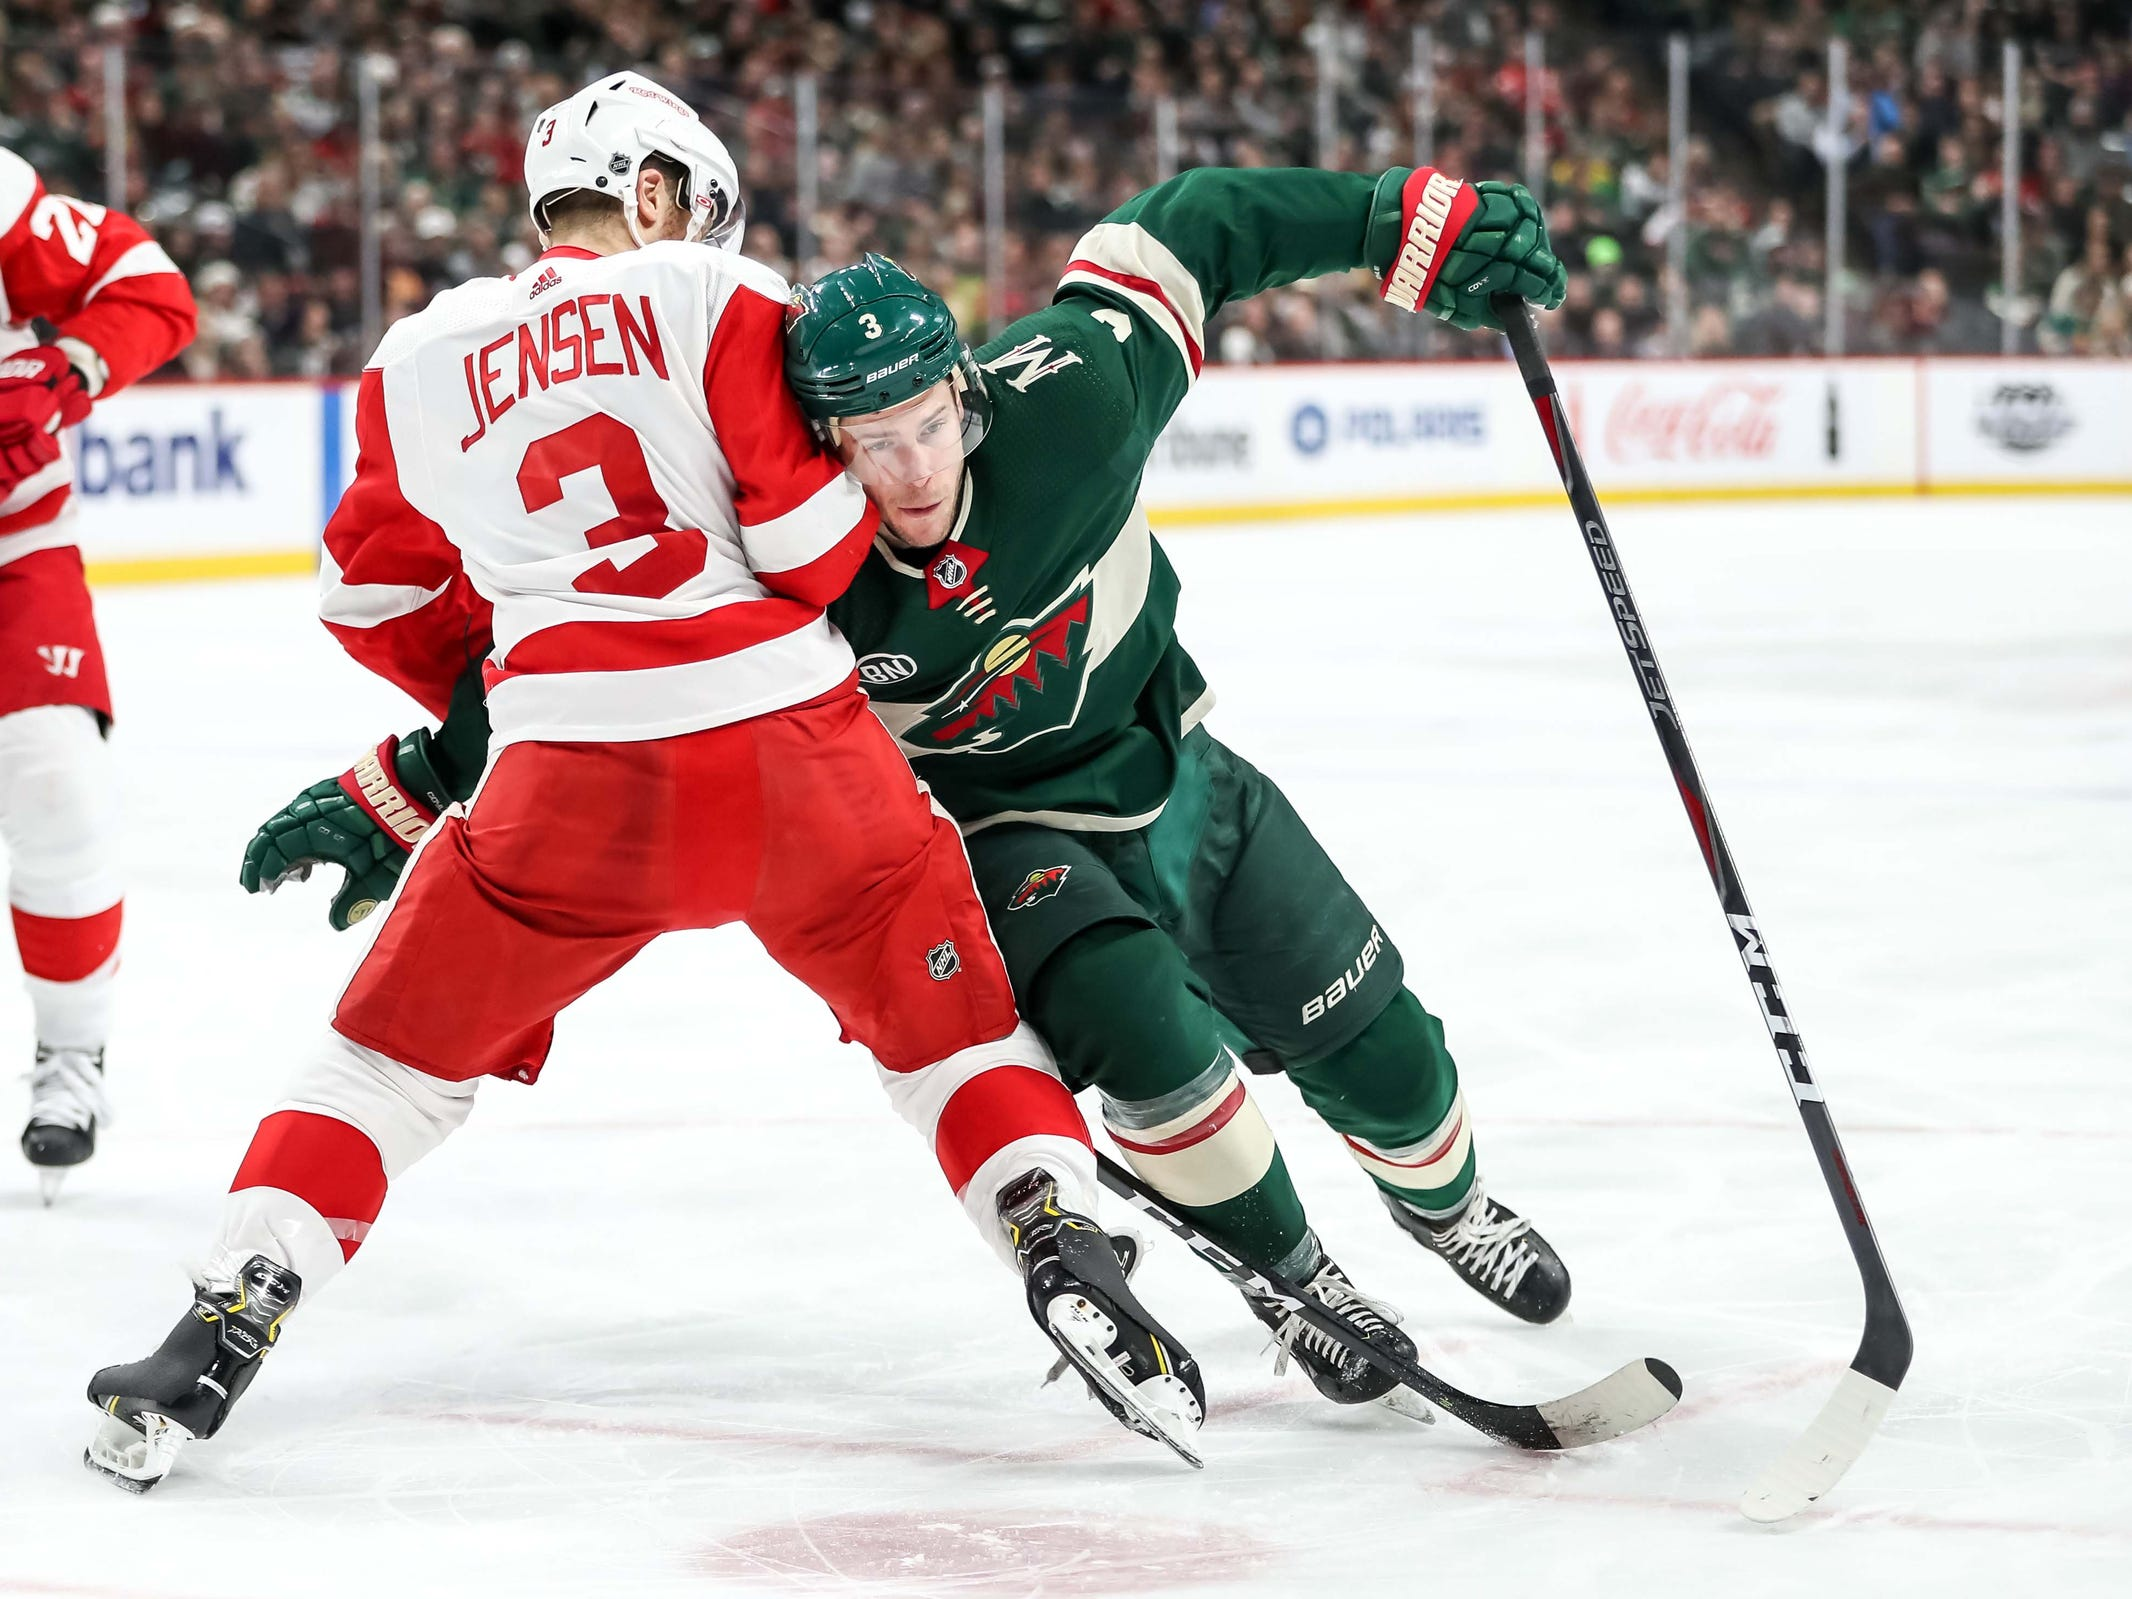 Detroit Red Wings defenseman Nick Jensen defends Minnesota Wild forward Charlie Coyle during the second period Jan. 12, 2019 in Saint Paul, Minn.